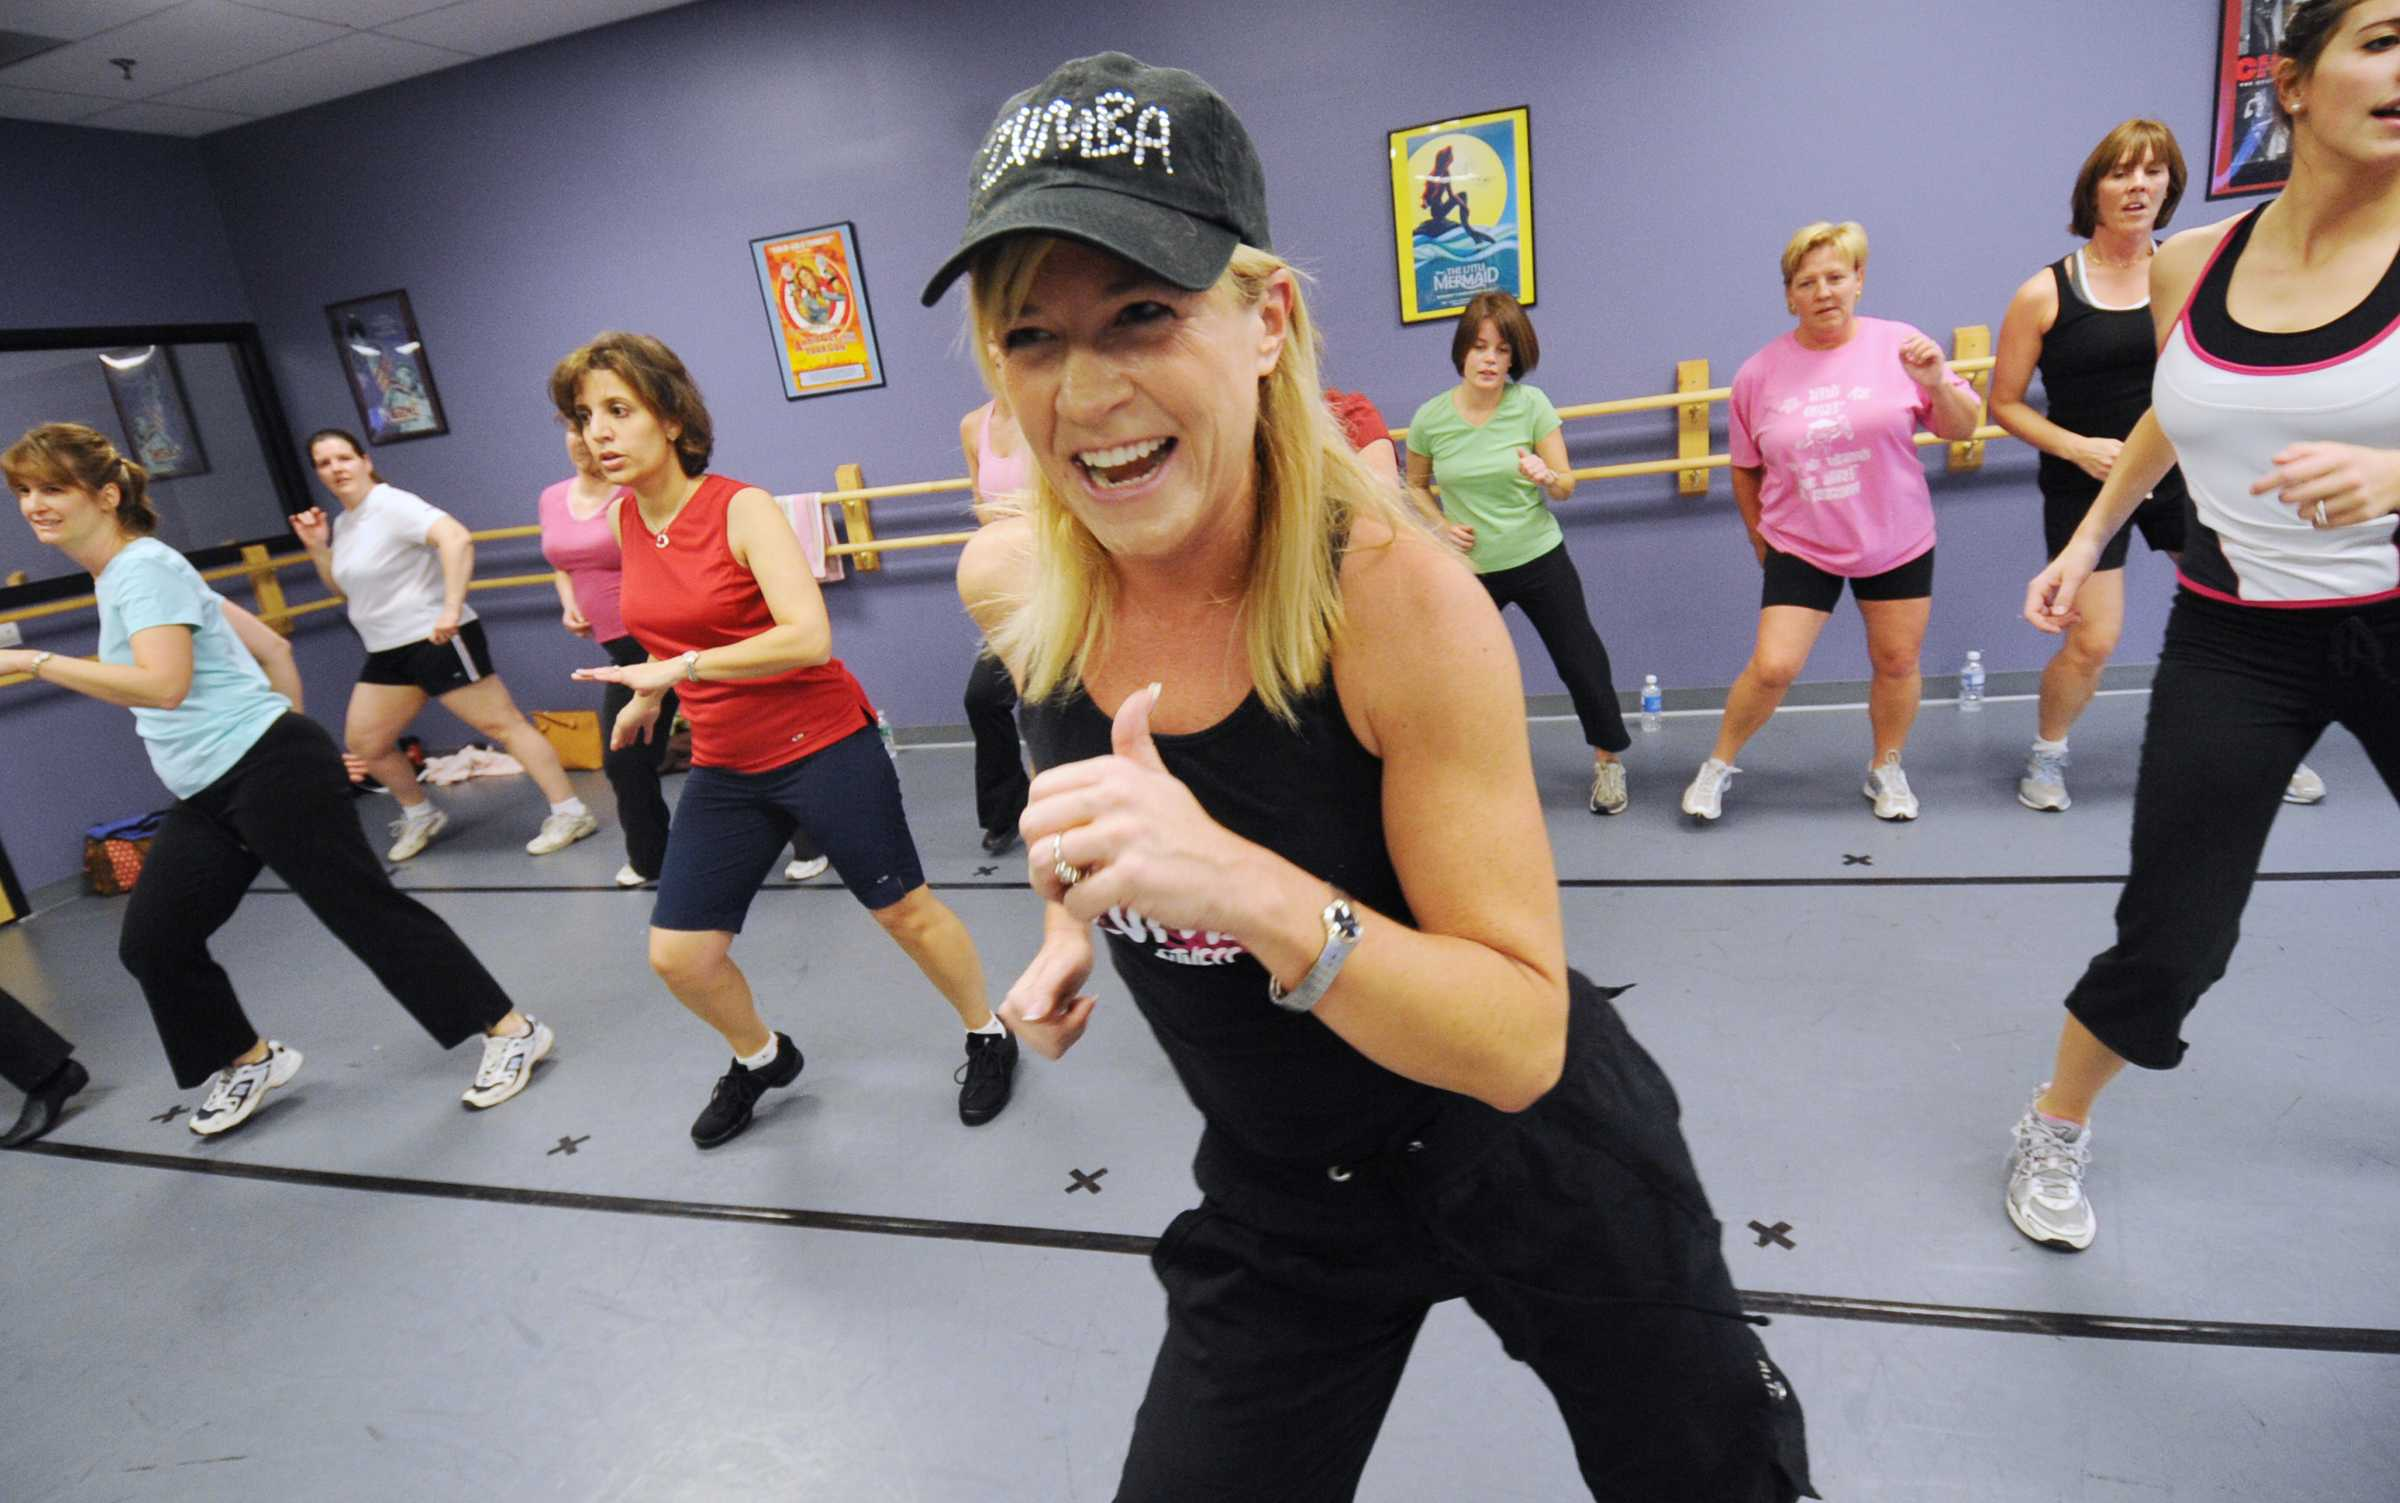 """Zumba instructor Shawn Schmitt, 44, of Allentown, Pennsylvania leads her class. Zumba is a new group fitness trend that offers a Latin-American inspired workout. Zumba, which is Colombian slang for """"fast,""""  mixes traditional Latin dances like salsa and merengue with cardiovascular moves in more traditional aerobic classes. (Monica Cabrera/Allentown Morning Call/MCT)"""